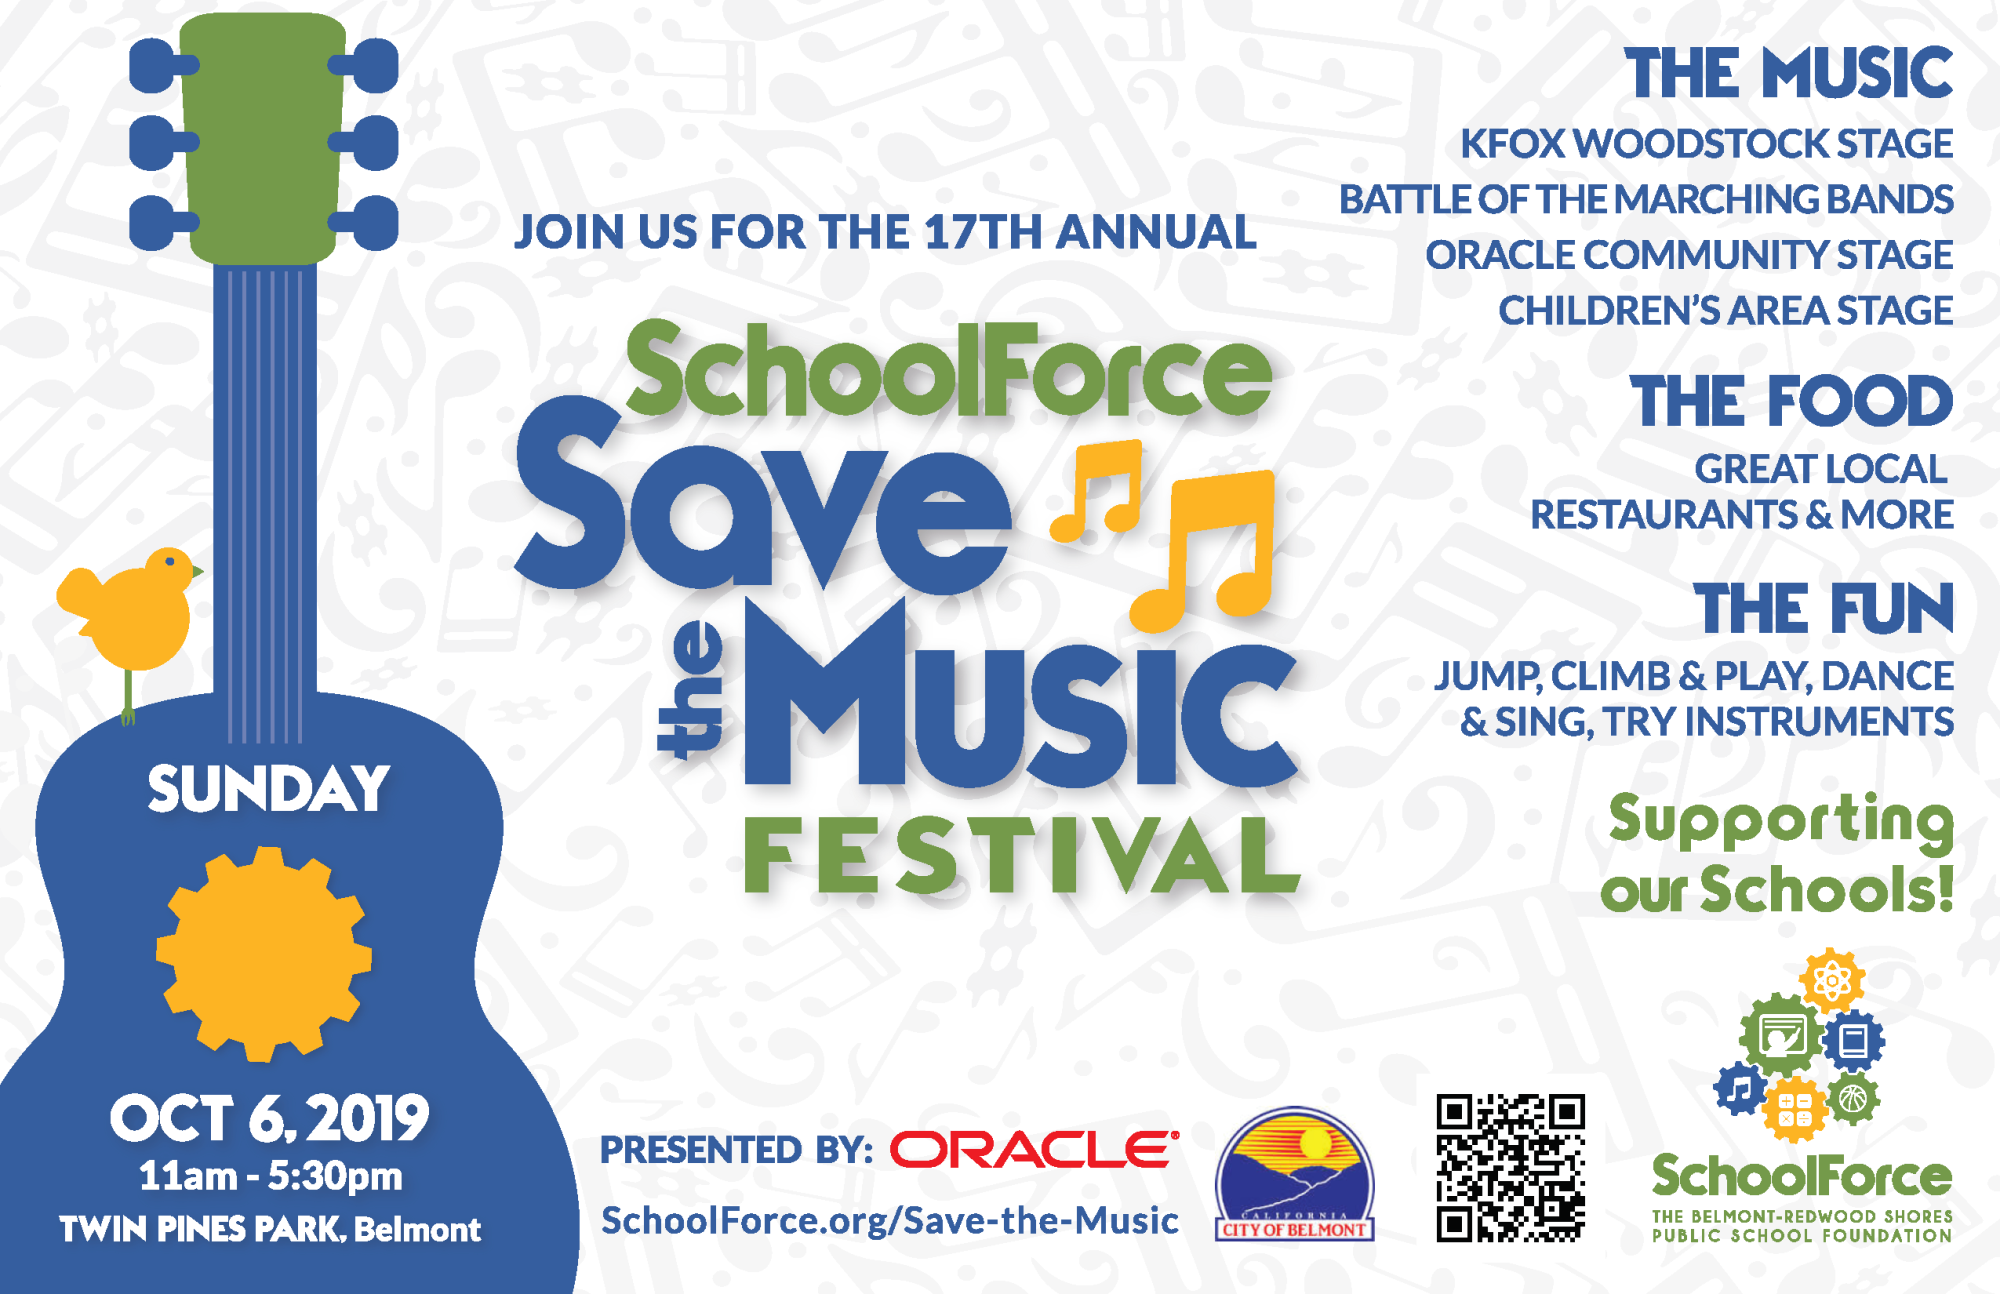 Schoolforce Save the Music 2019